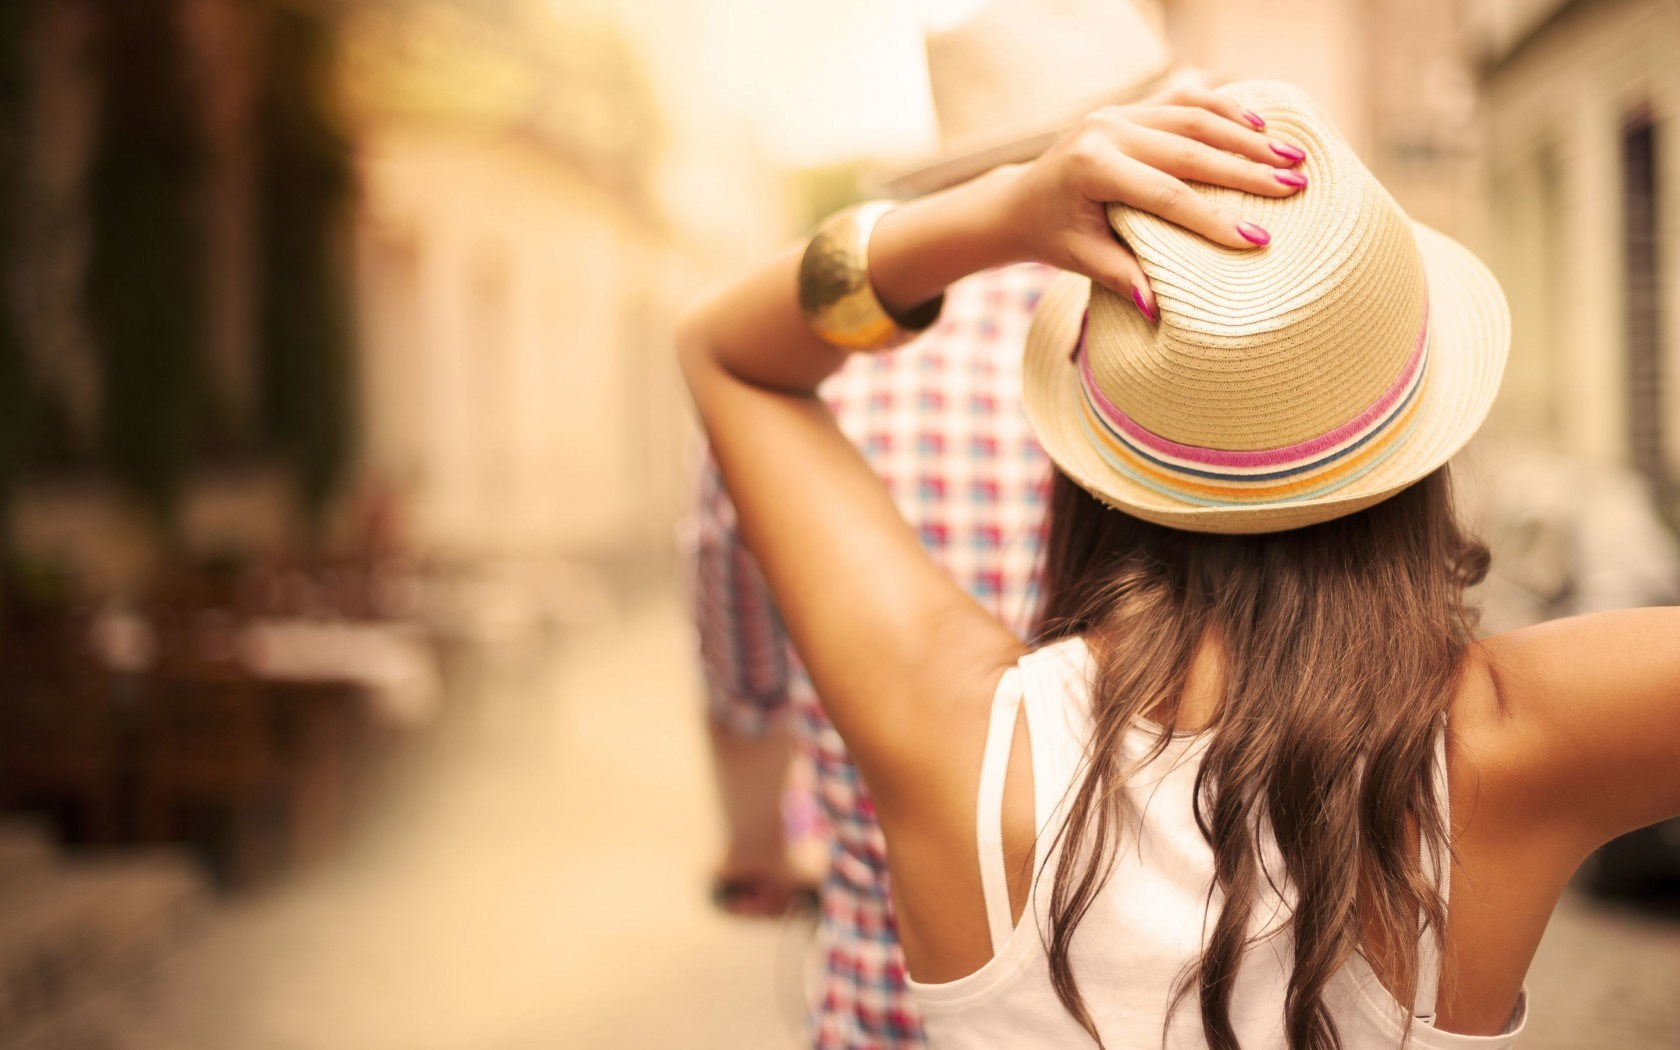 mood-girl-bracelet-hat-hd-wallpaper